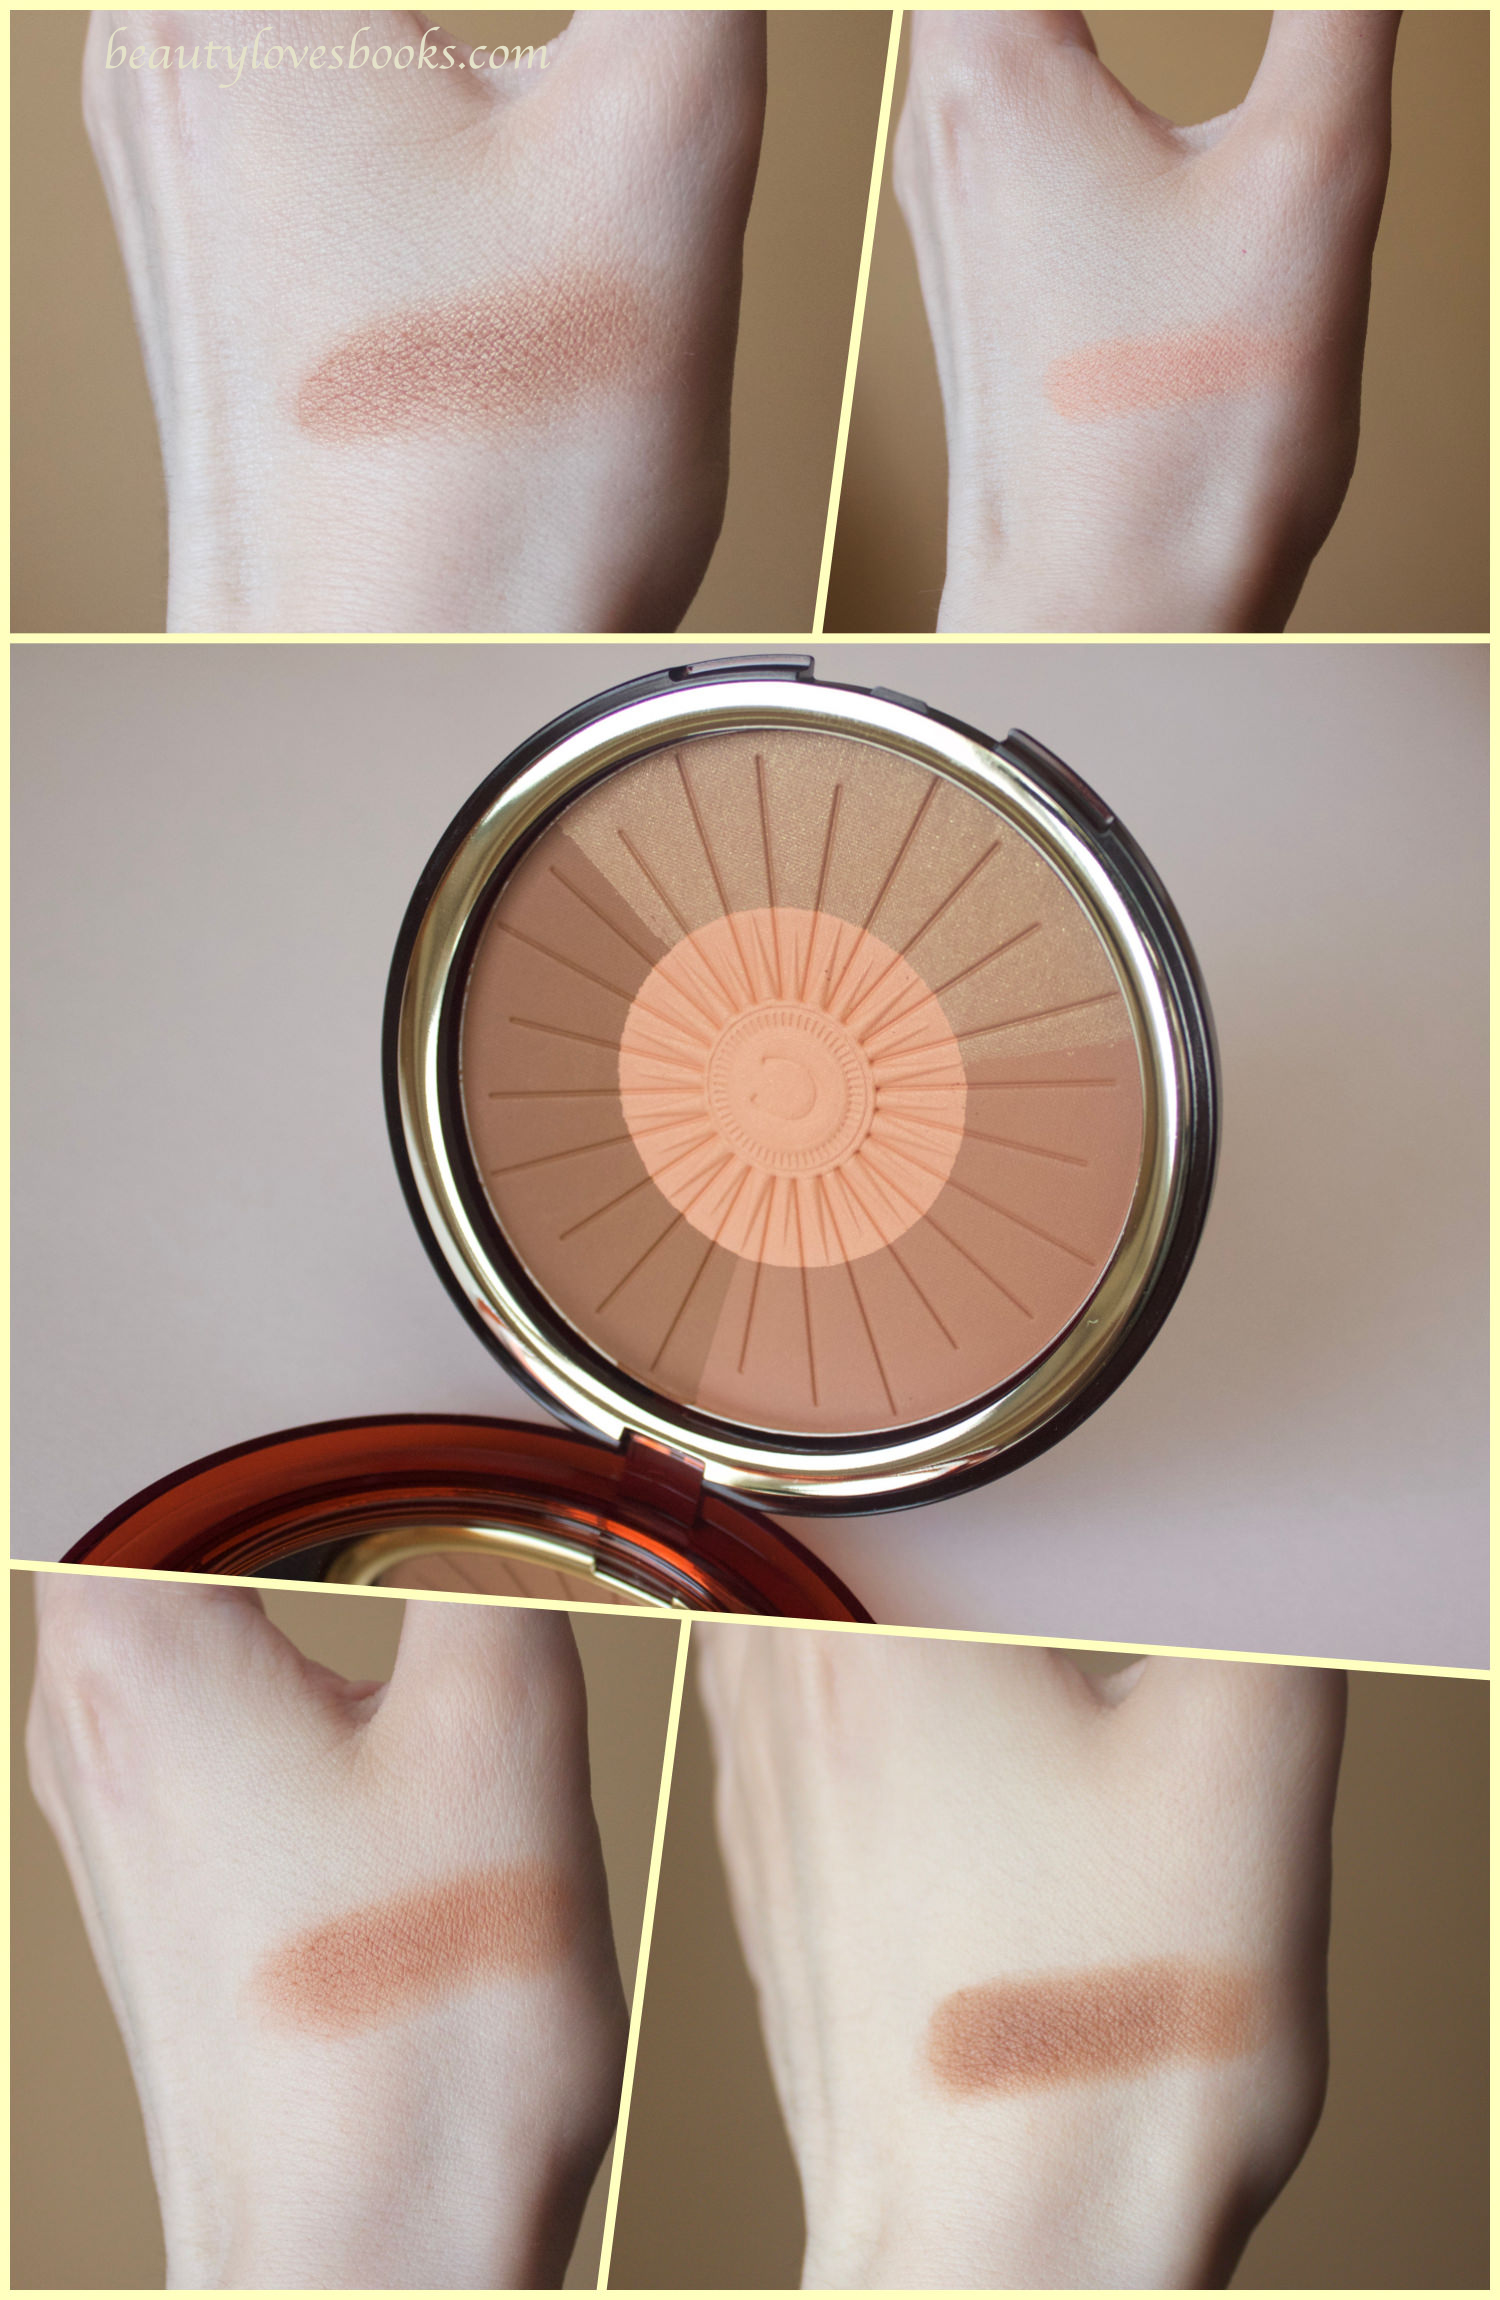 Clarins Summer 2016 Bronzing & Blush Compact swatches